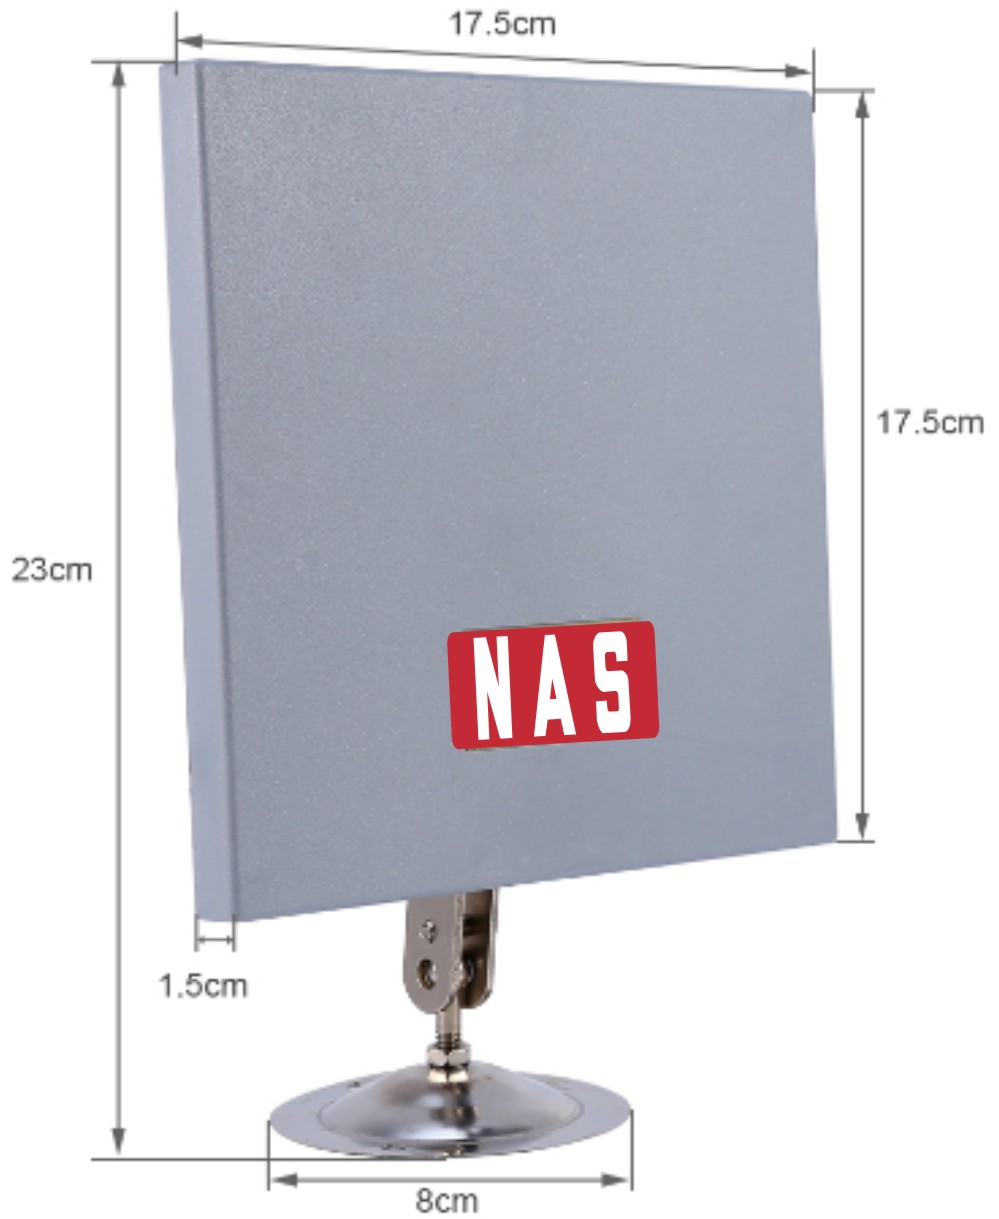 14dBi WiFi Directional Antenna Dimensions